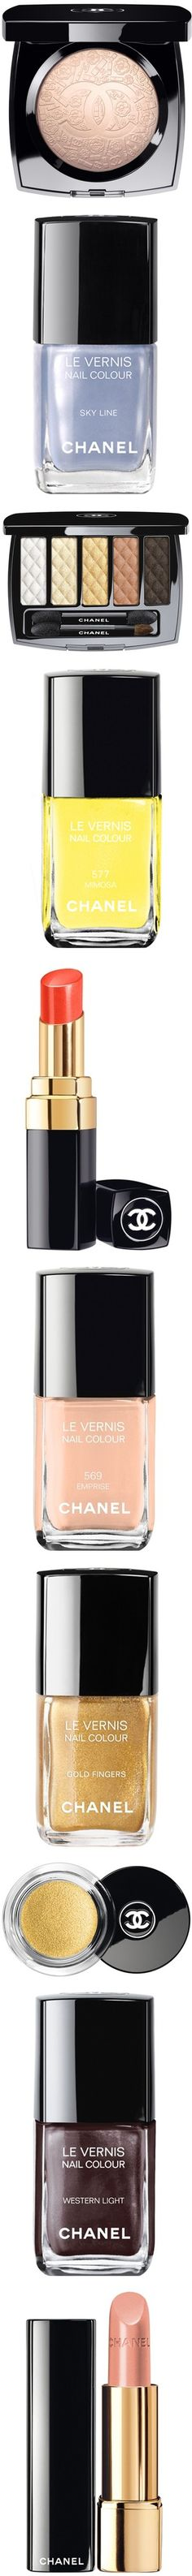 """Chanel - Limited Edition Colors"" by chanel on Polyvore"